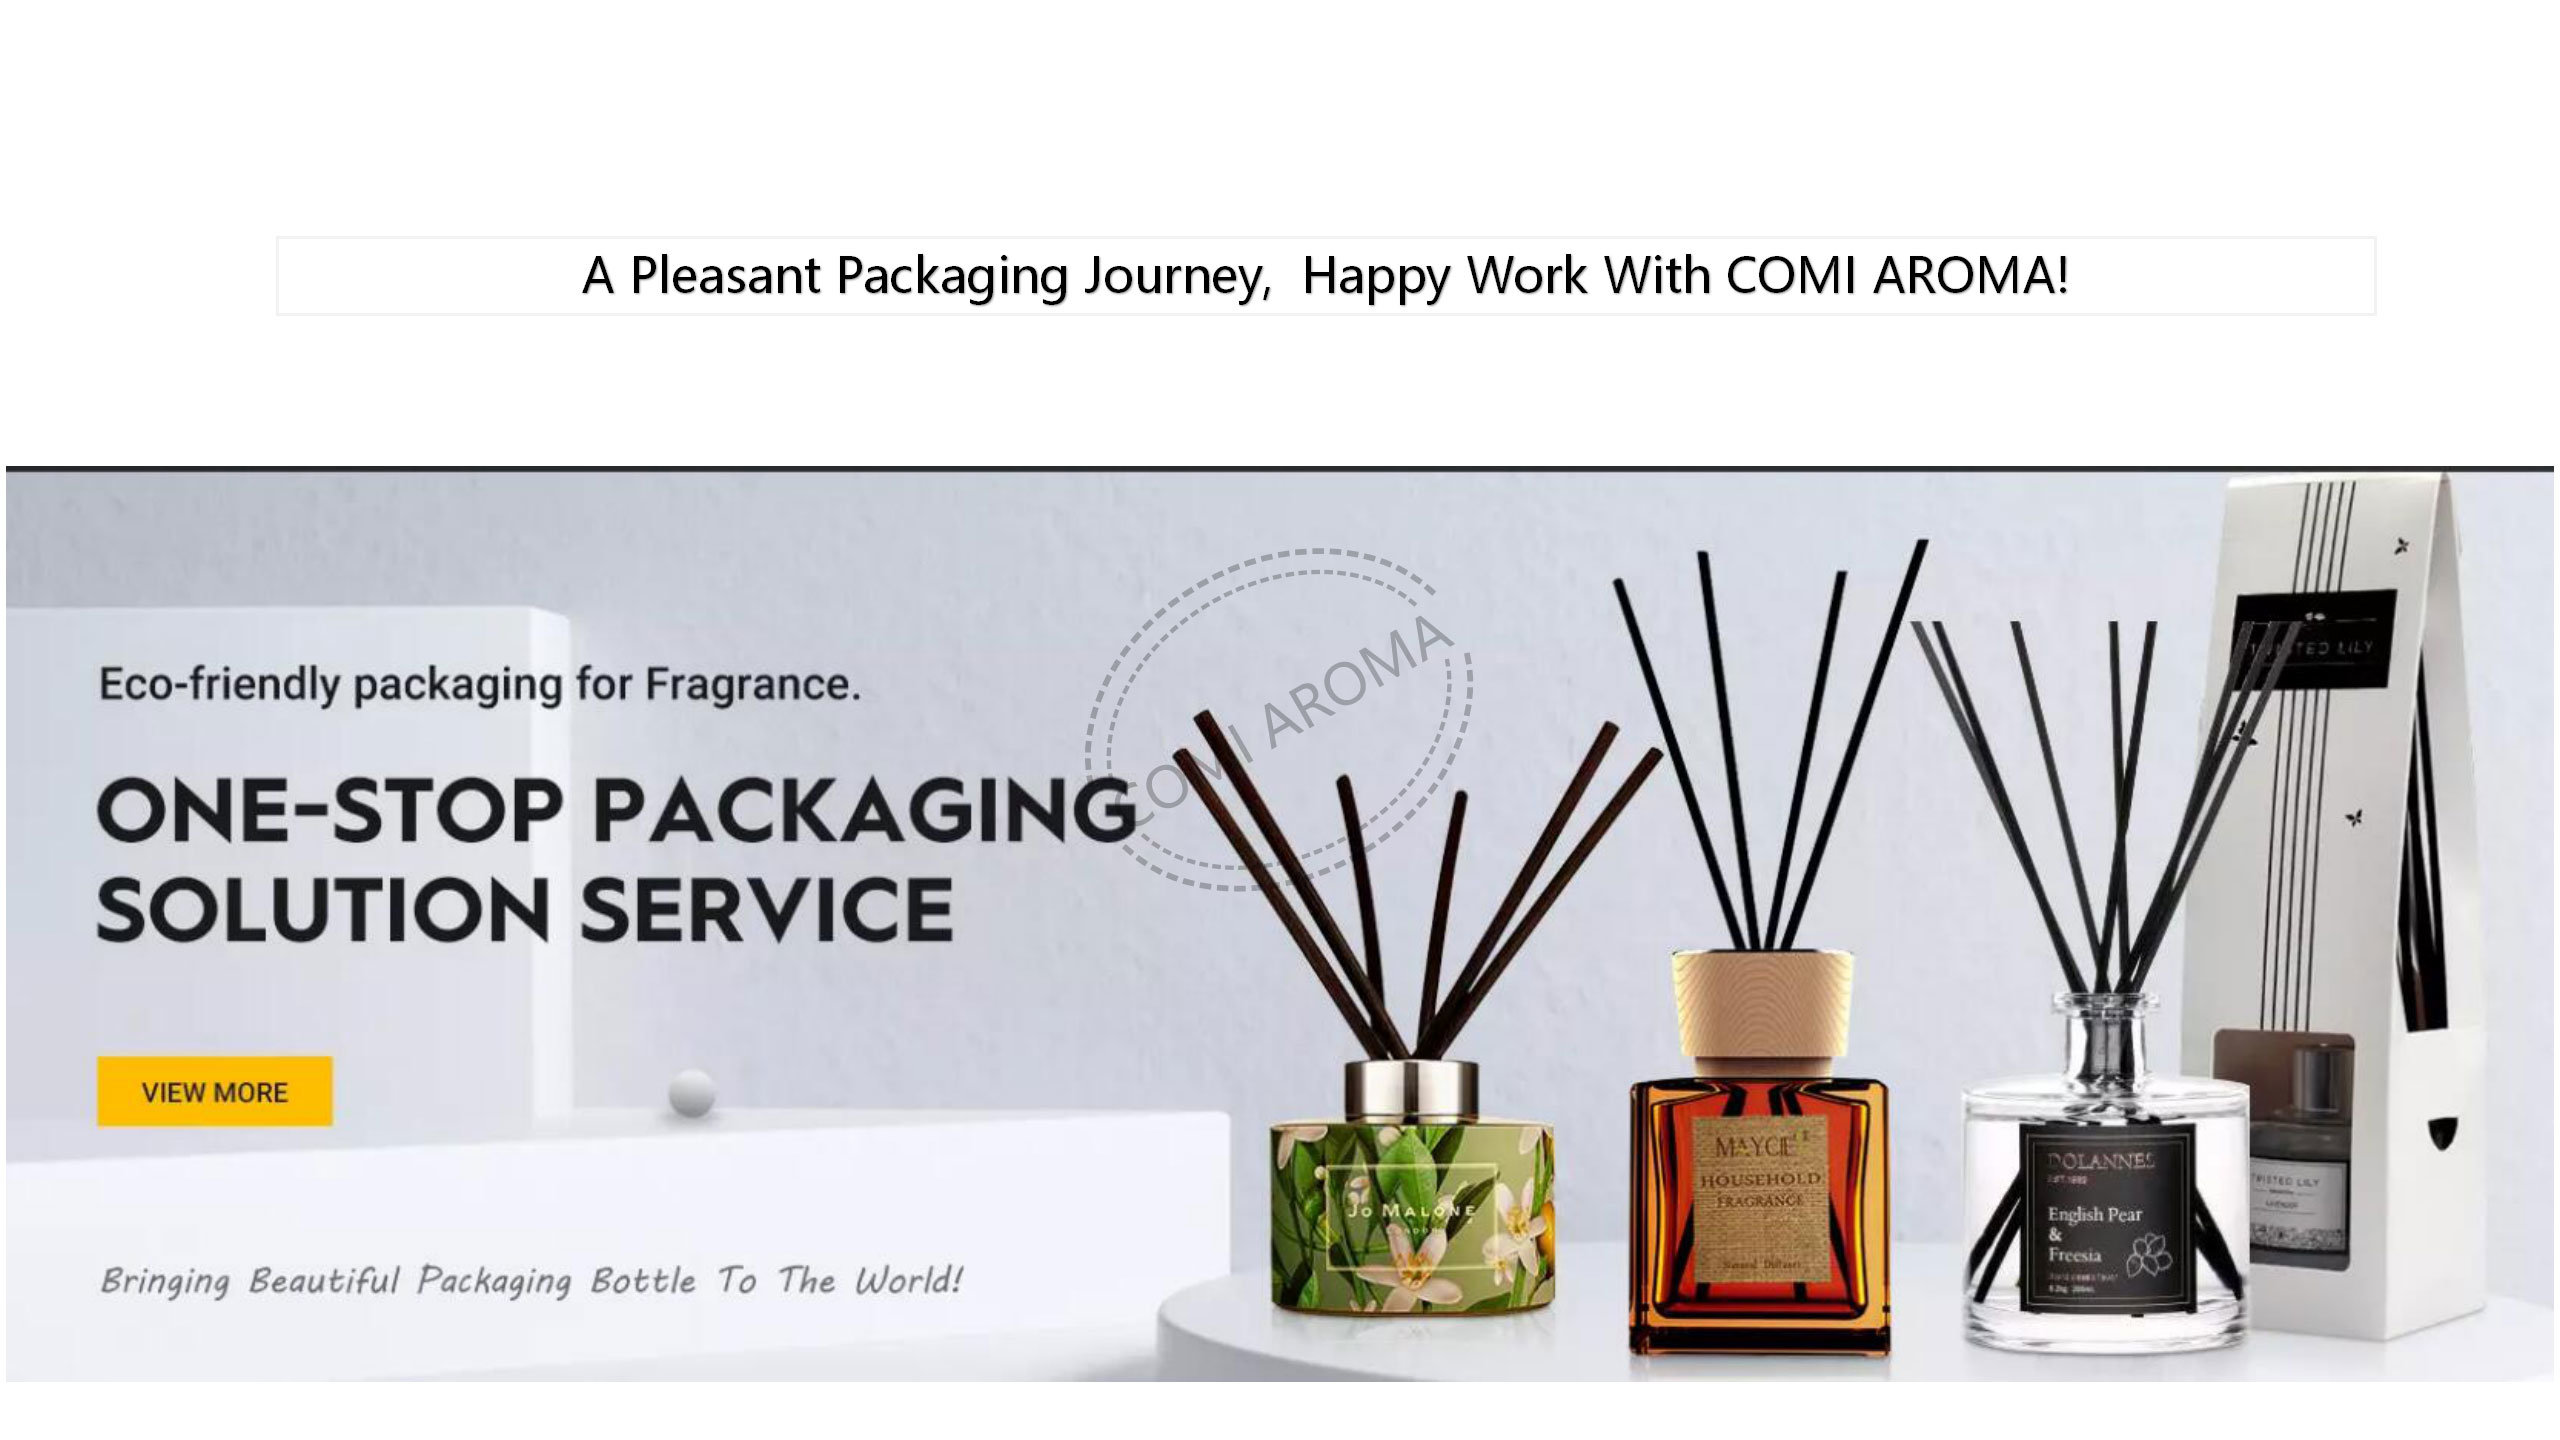 200ml Amber Glass Bottles For Reed Diffuser Room Scents China Diffuser Bottles And Diffusers Price Made In China Com